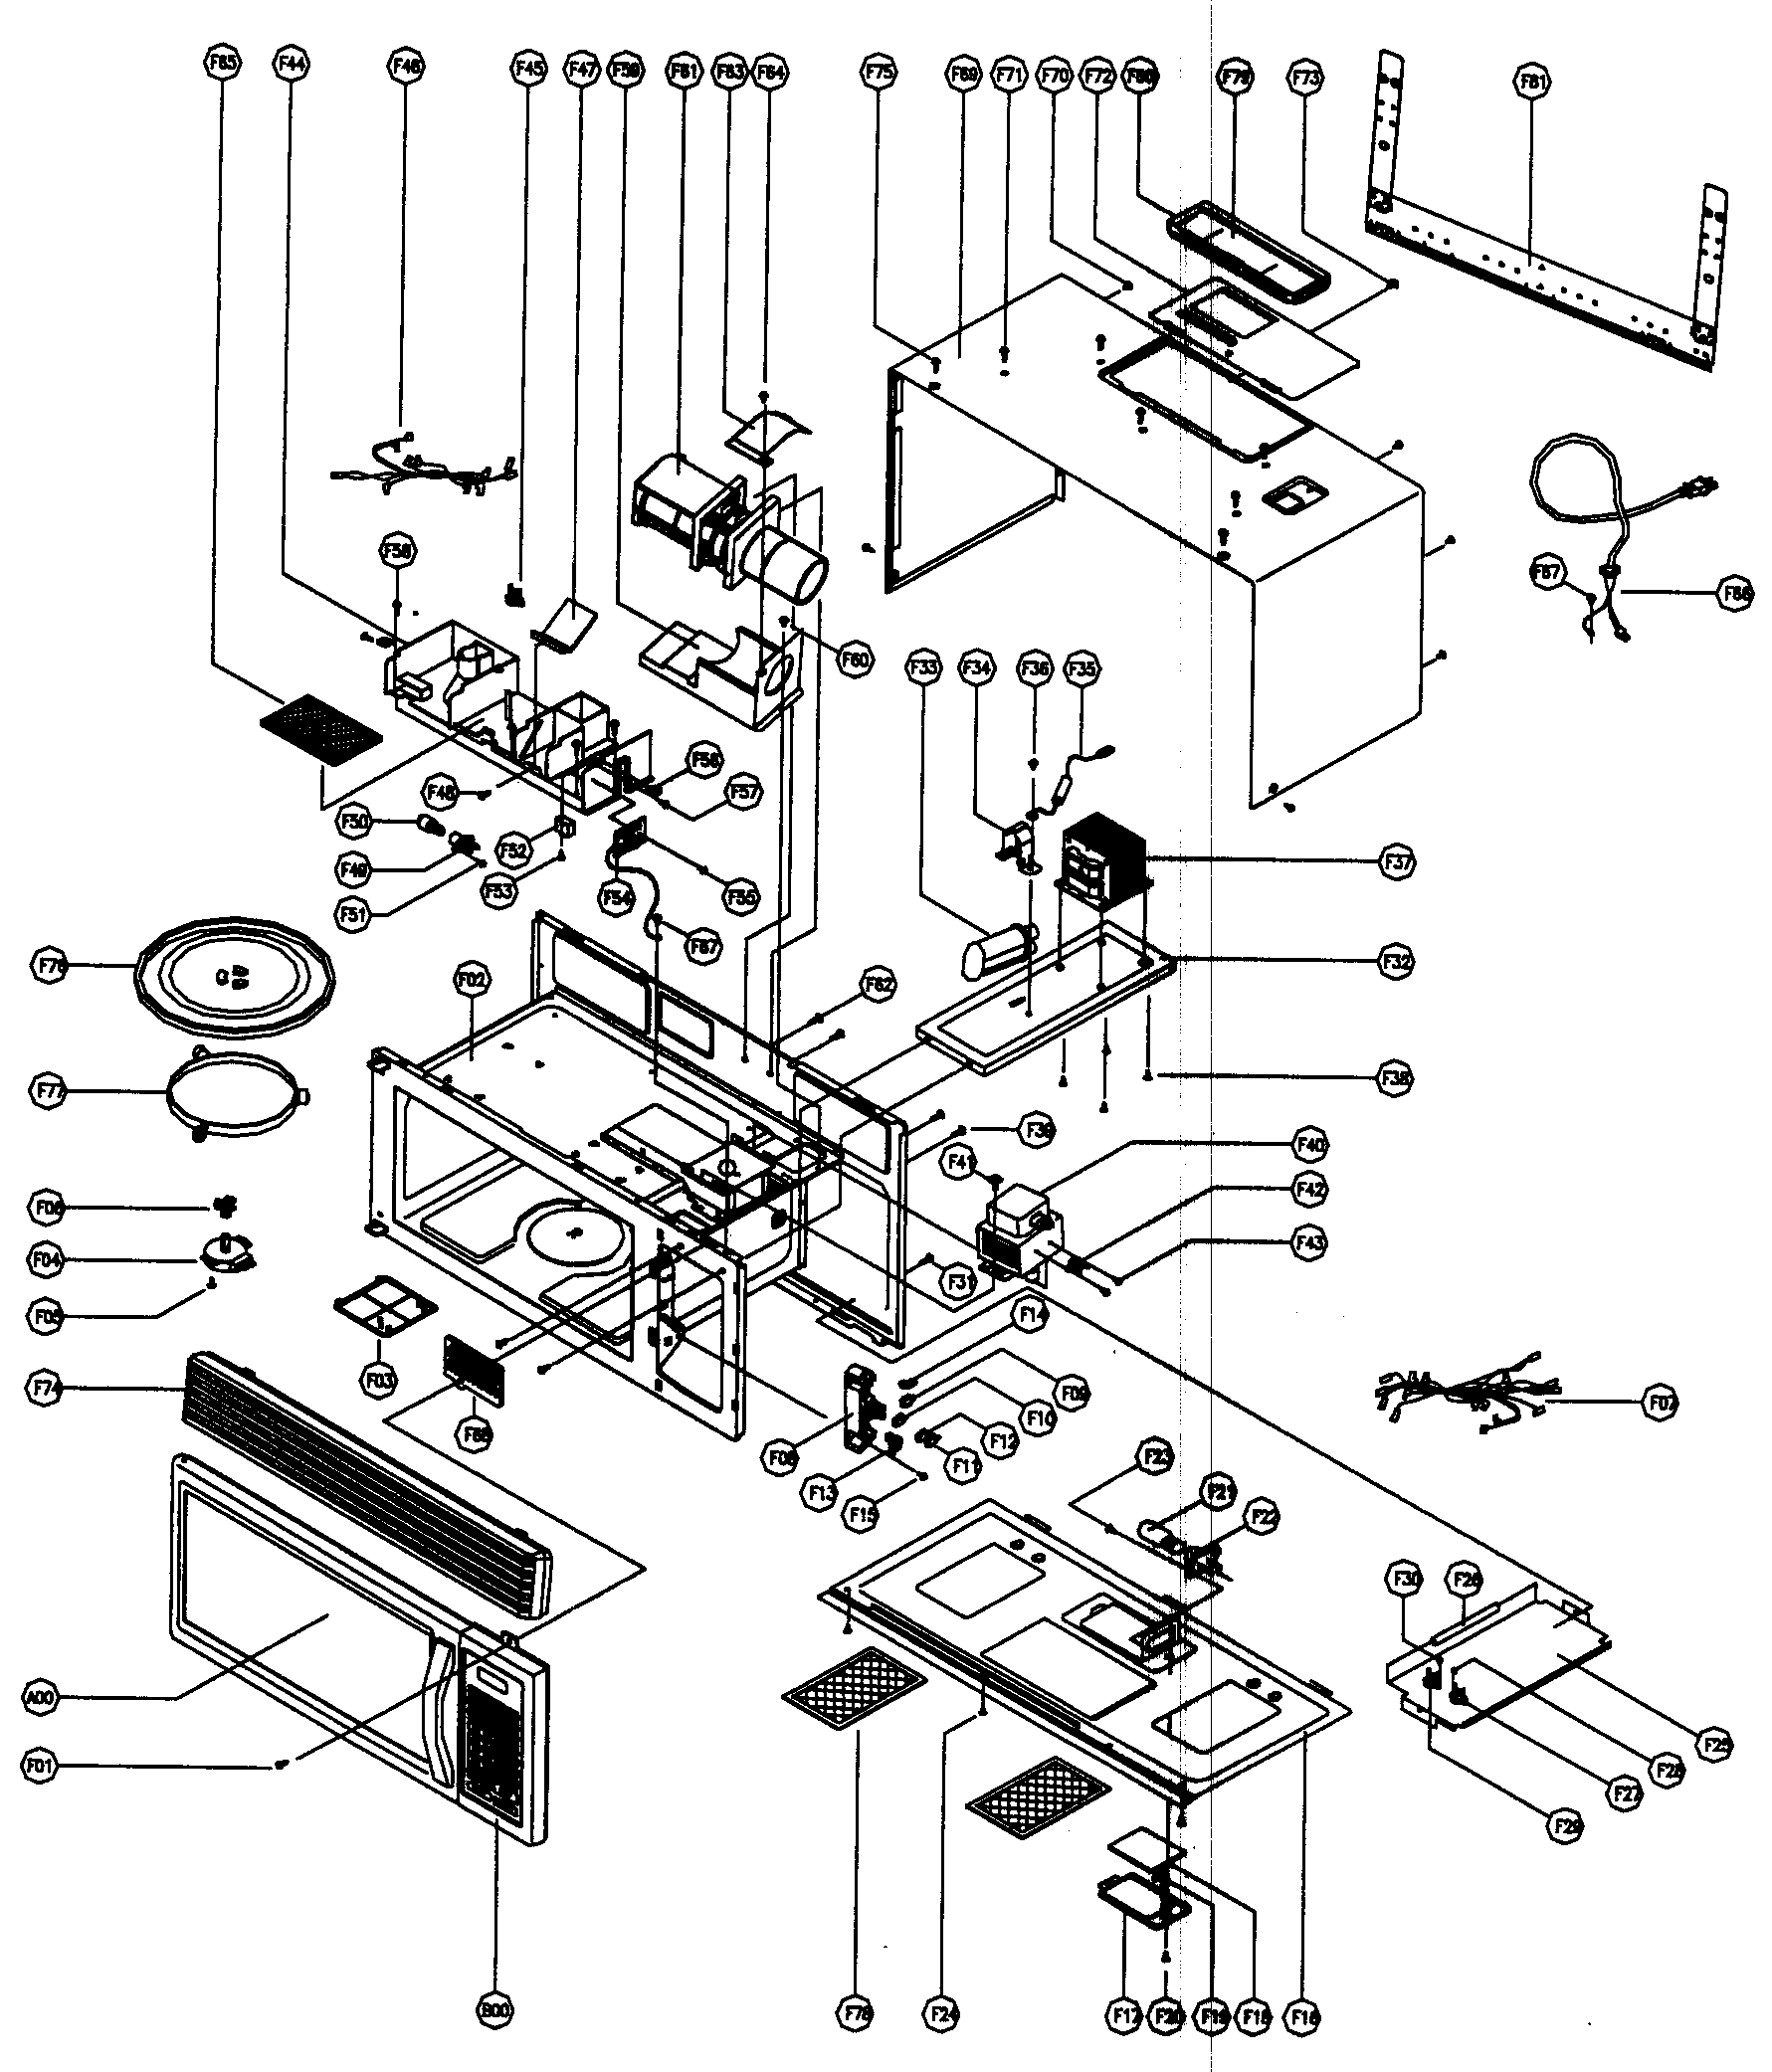 CABINET PARTS Diagram & Parts List for Model mco160ub